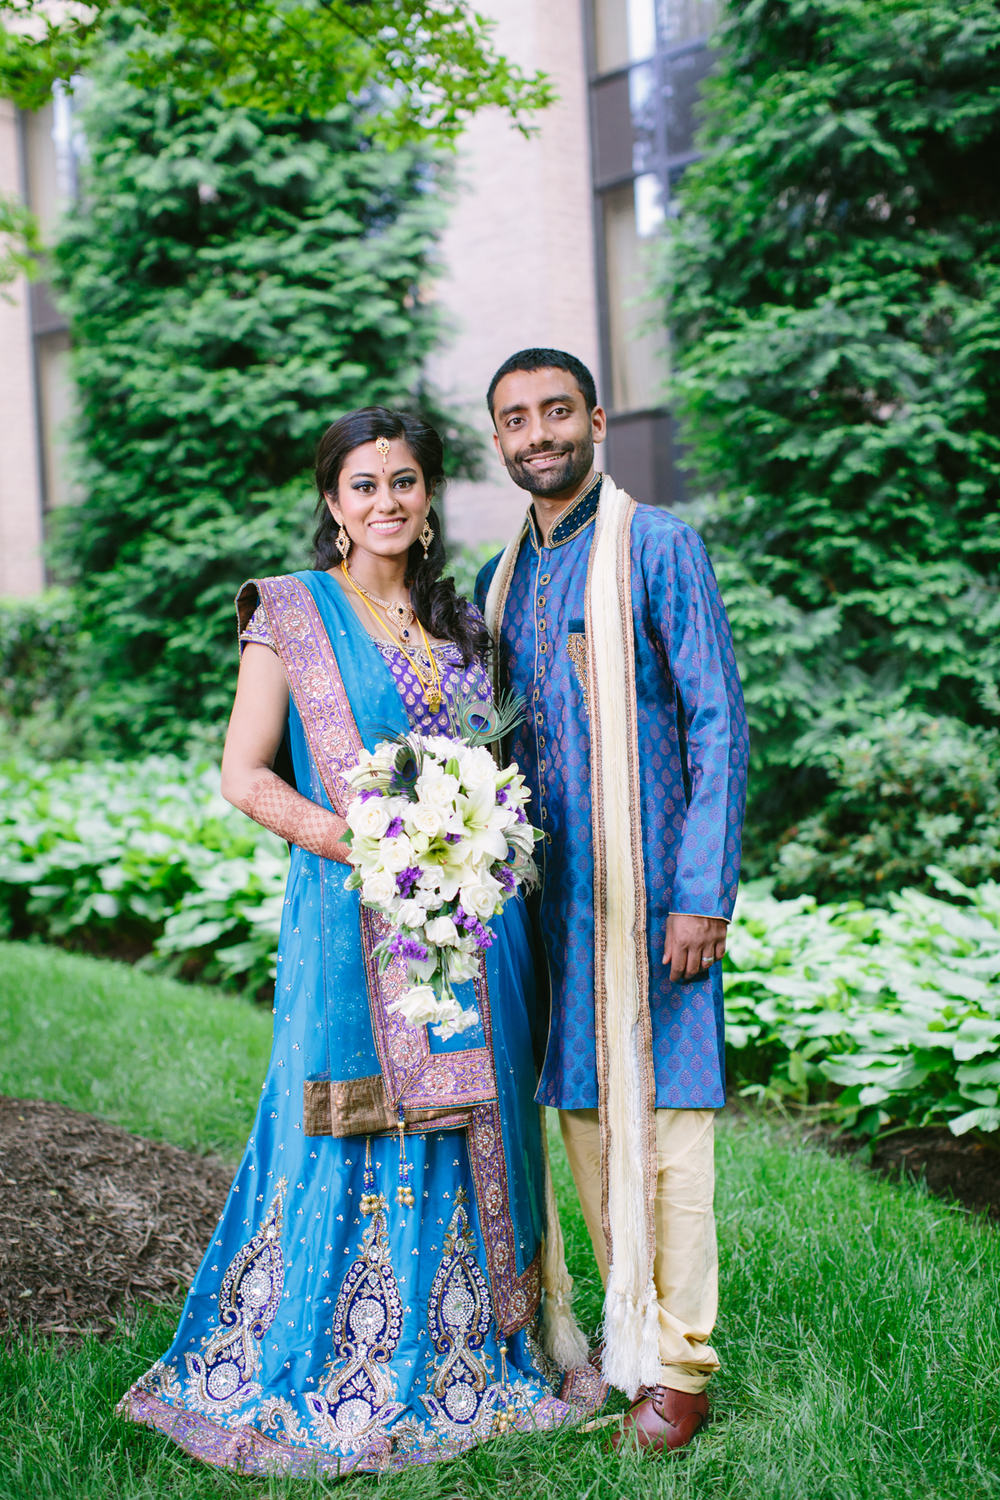 Hindu_Wedding_Washington_DC_Wedding_Photographer_P&S-156.JPG